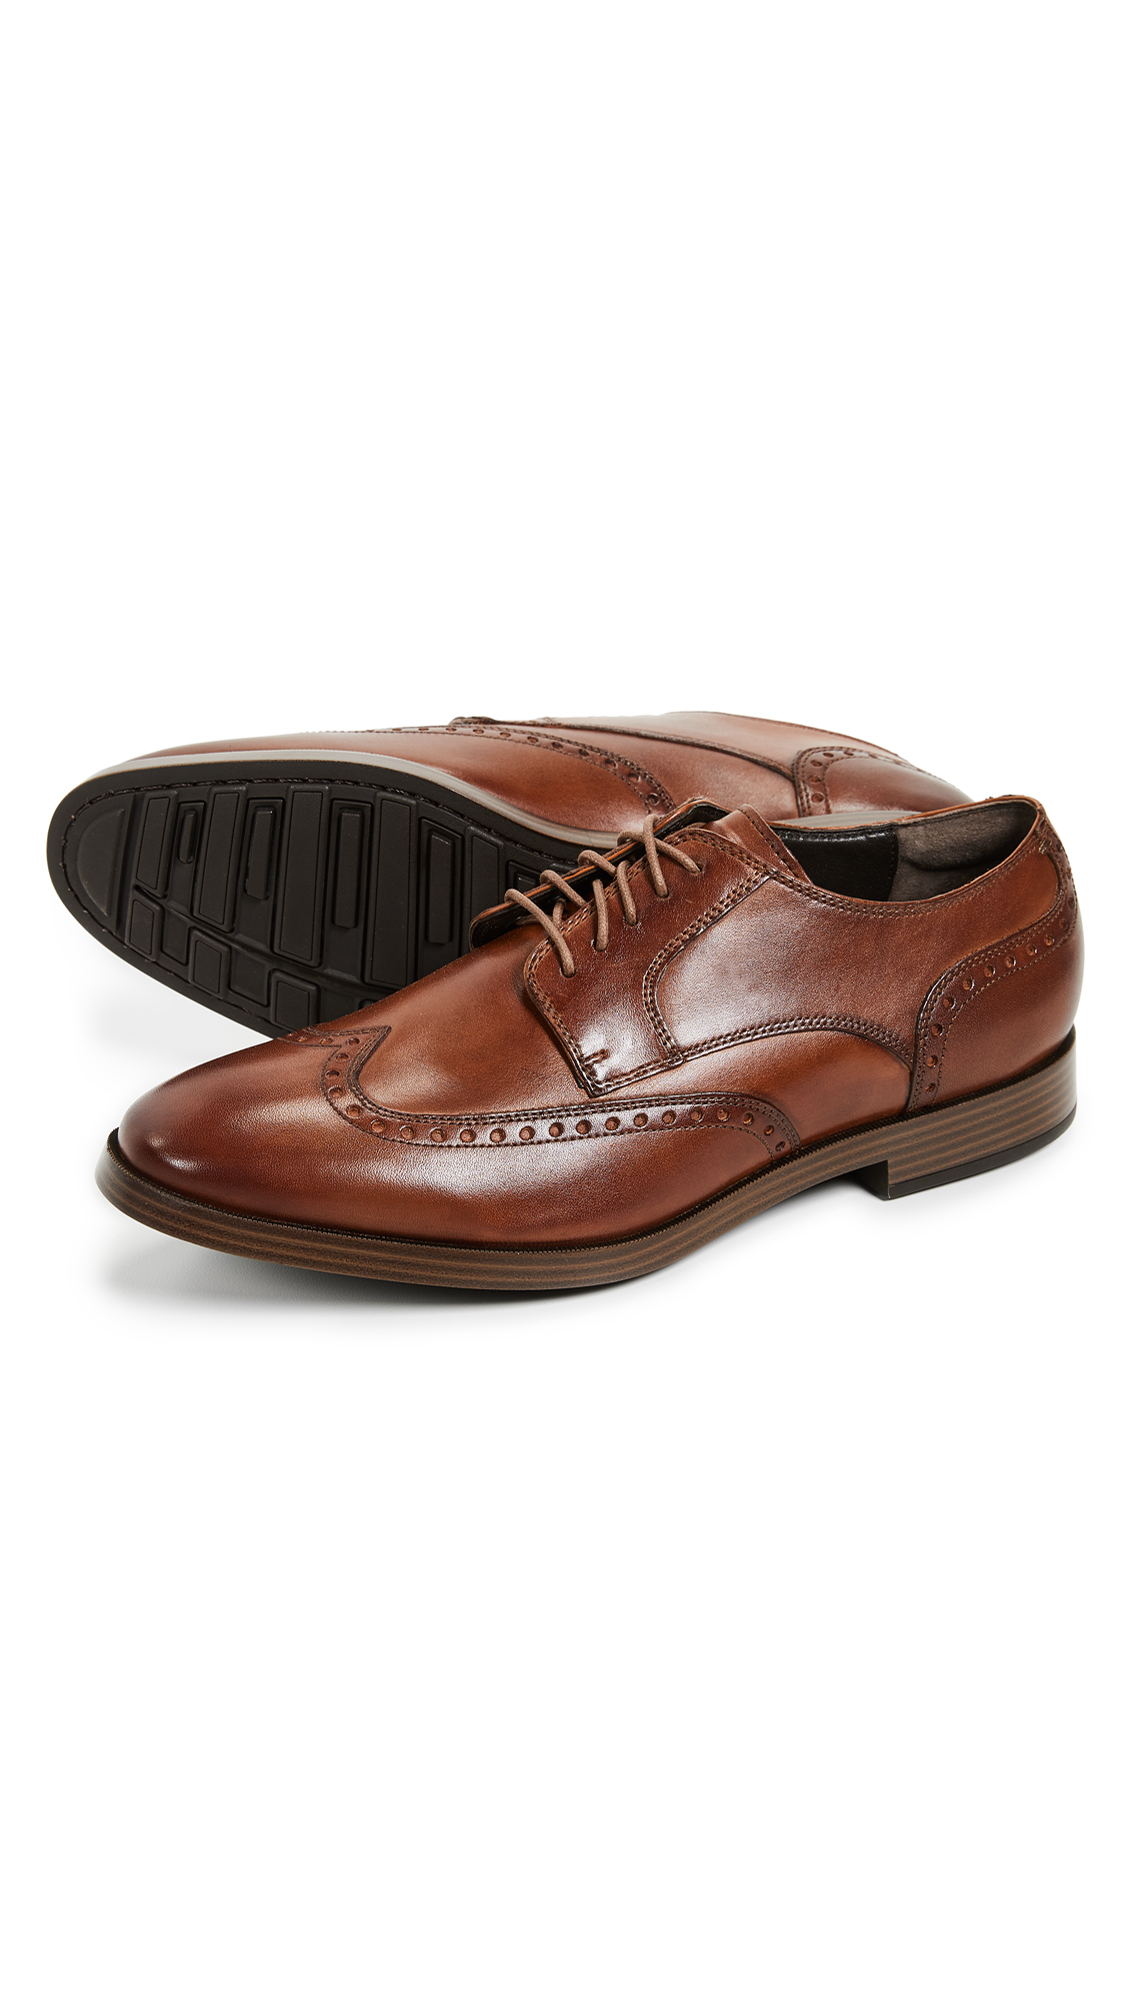 Cole Haan Jay Grand Winttip Oxford Shoes | EAST DANE Use Code EDNC18 for  15% Off